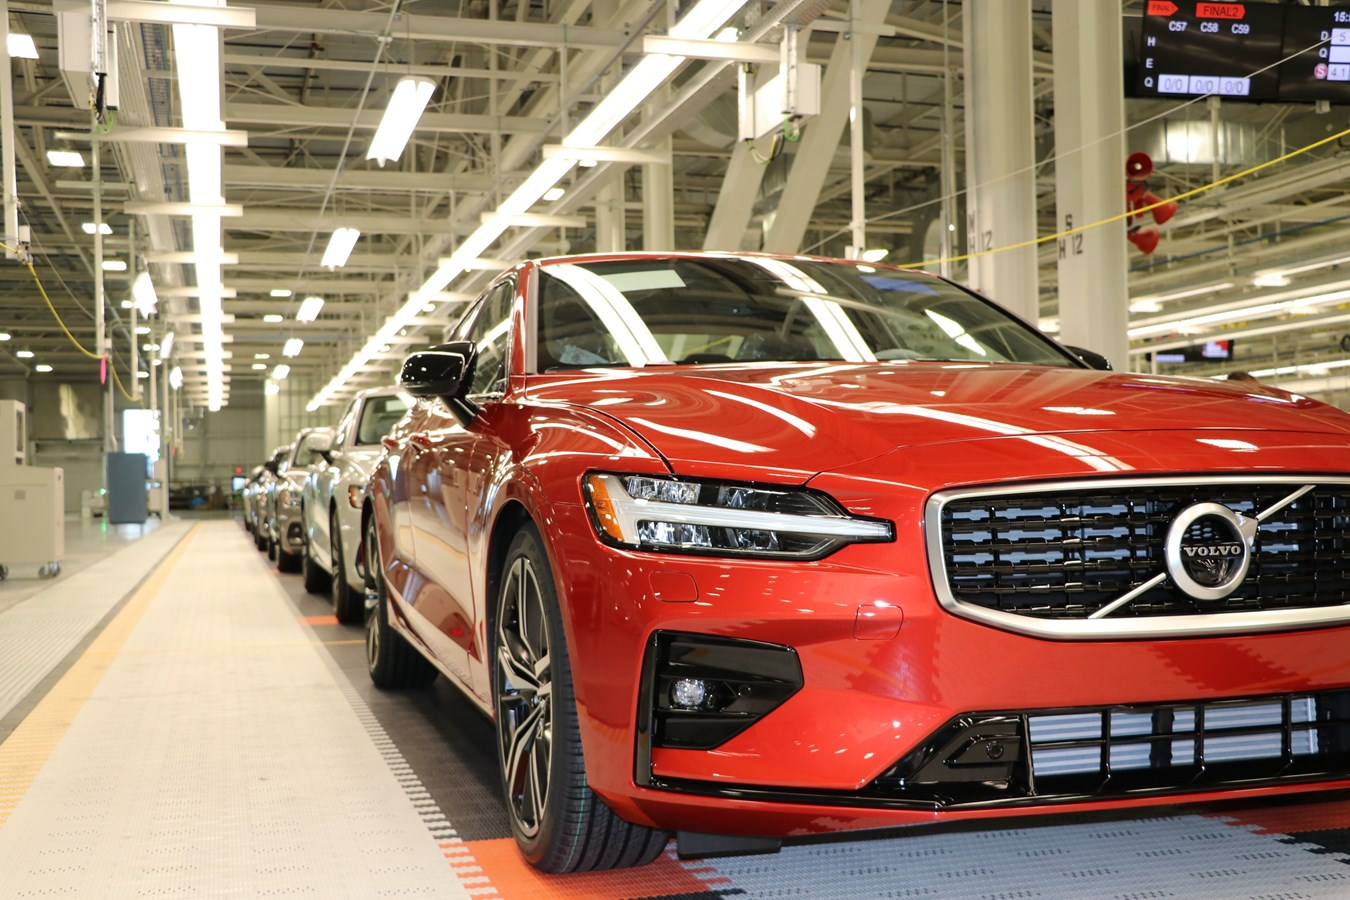 Volvo Cars First American Car Factory Begins Mass Production Volvo Car Usa Newsroom